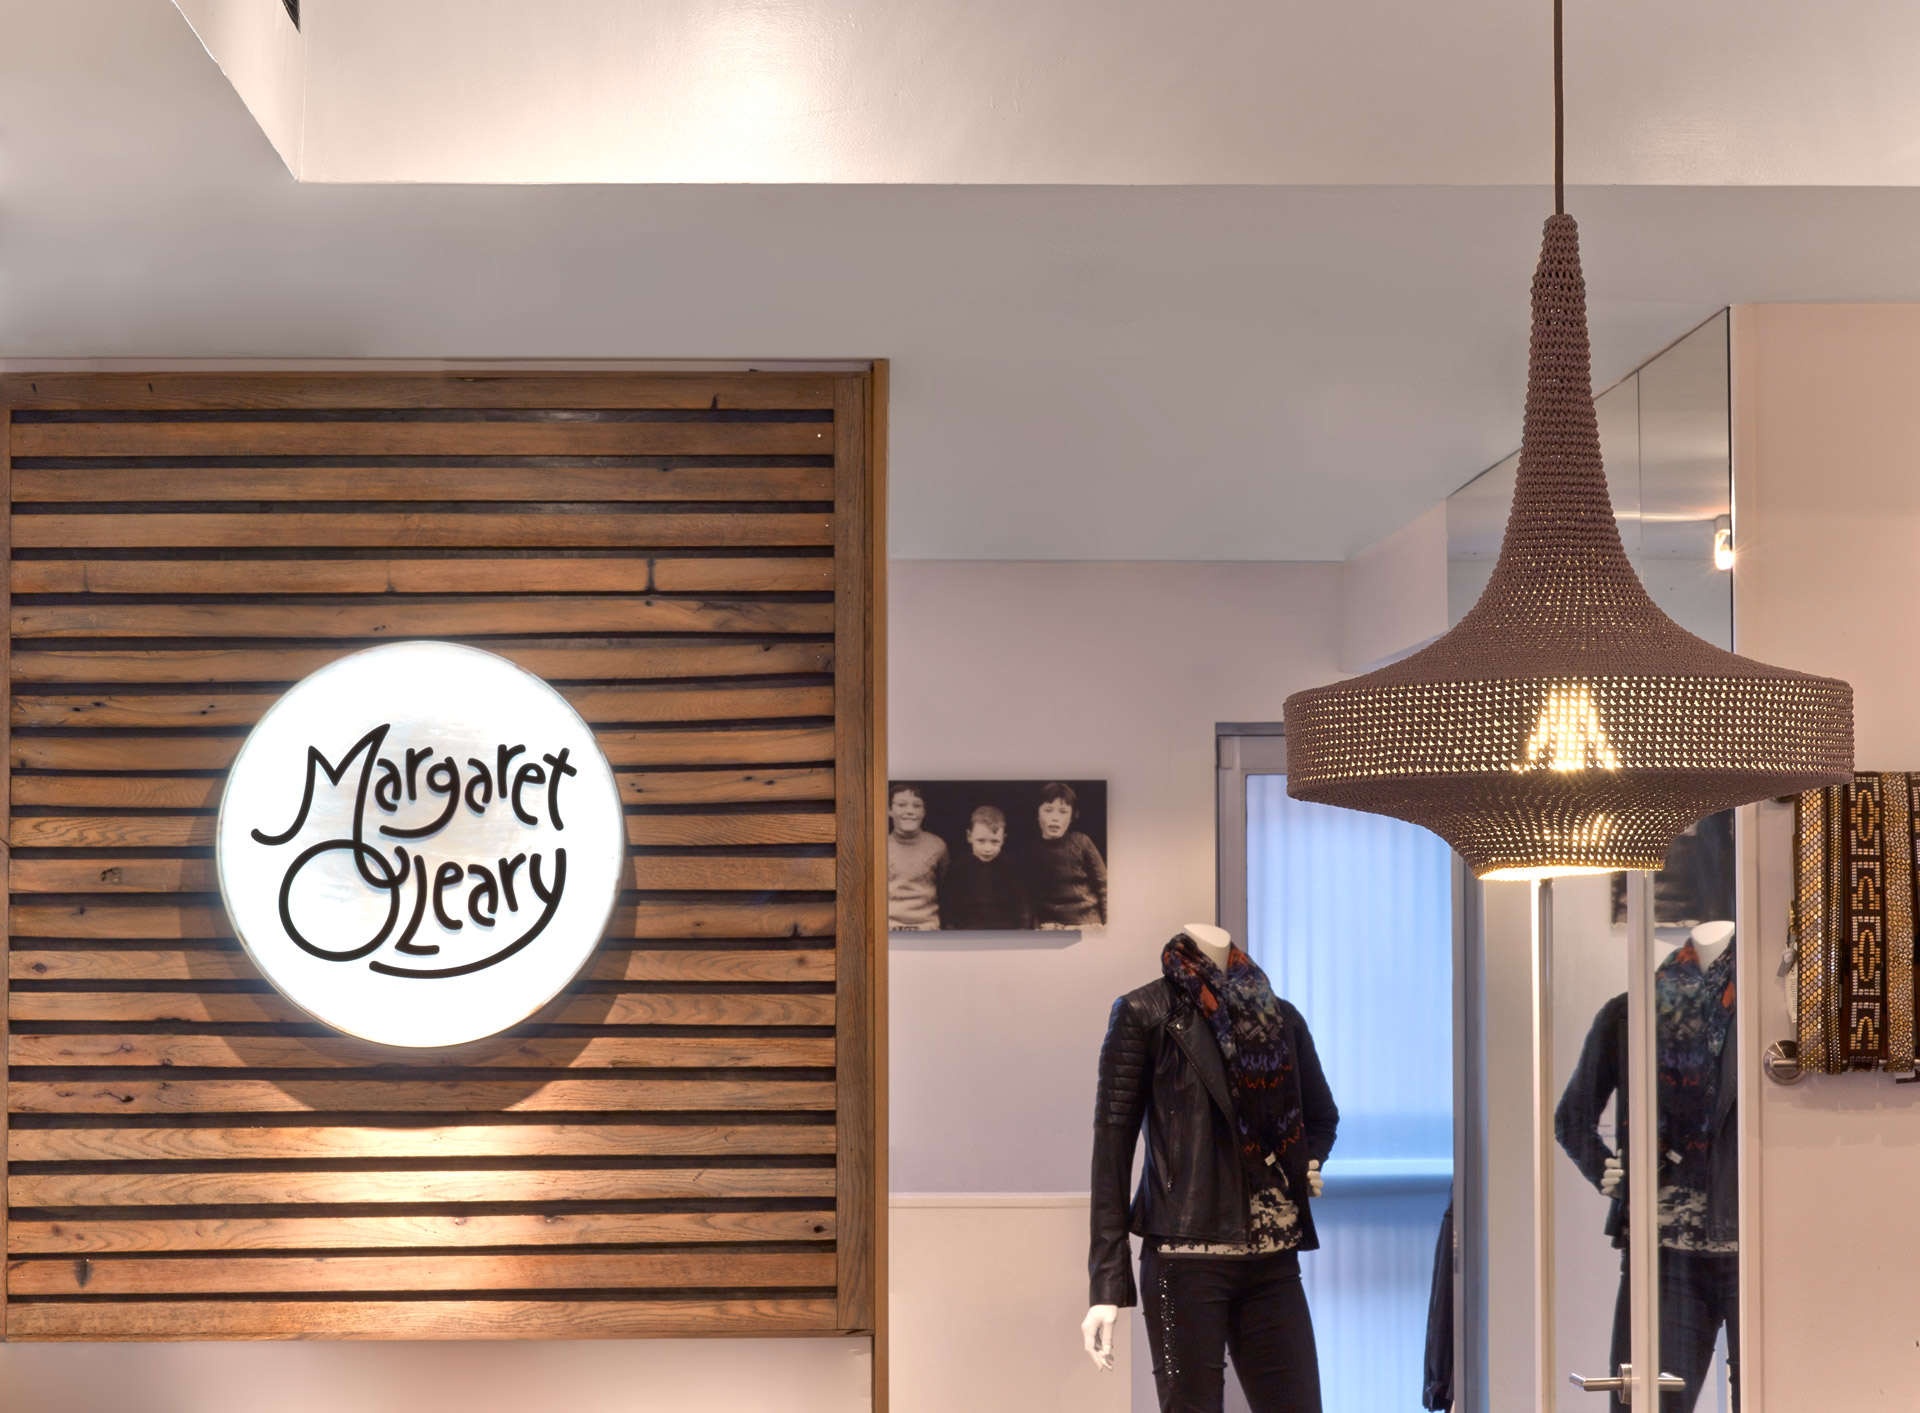 Margaret O'Leary retail store design